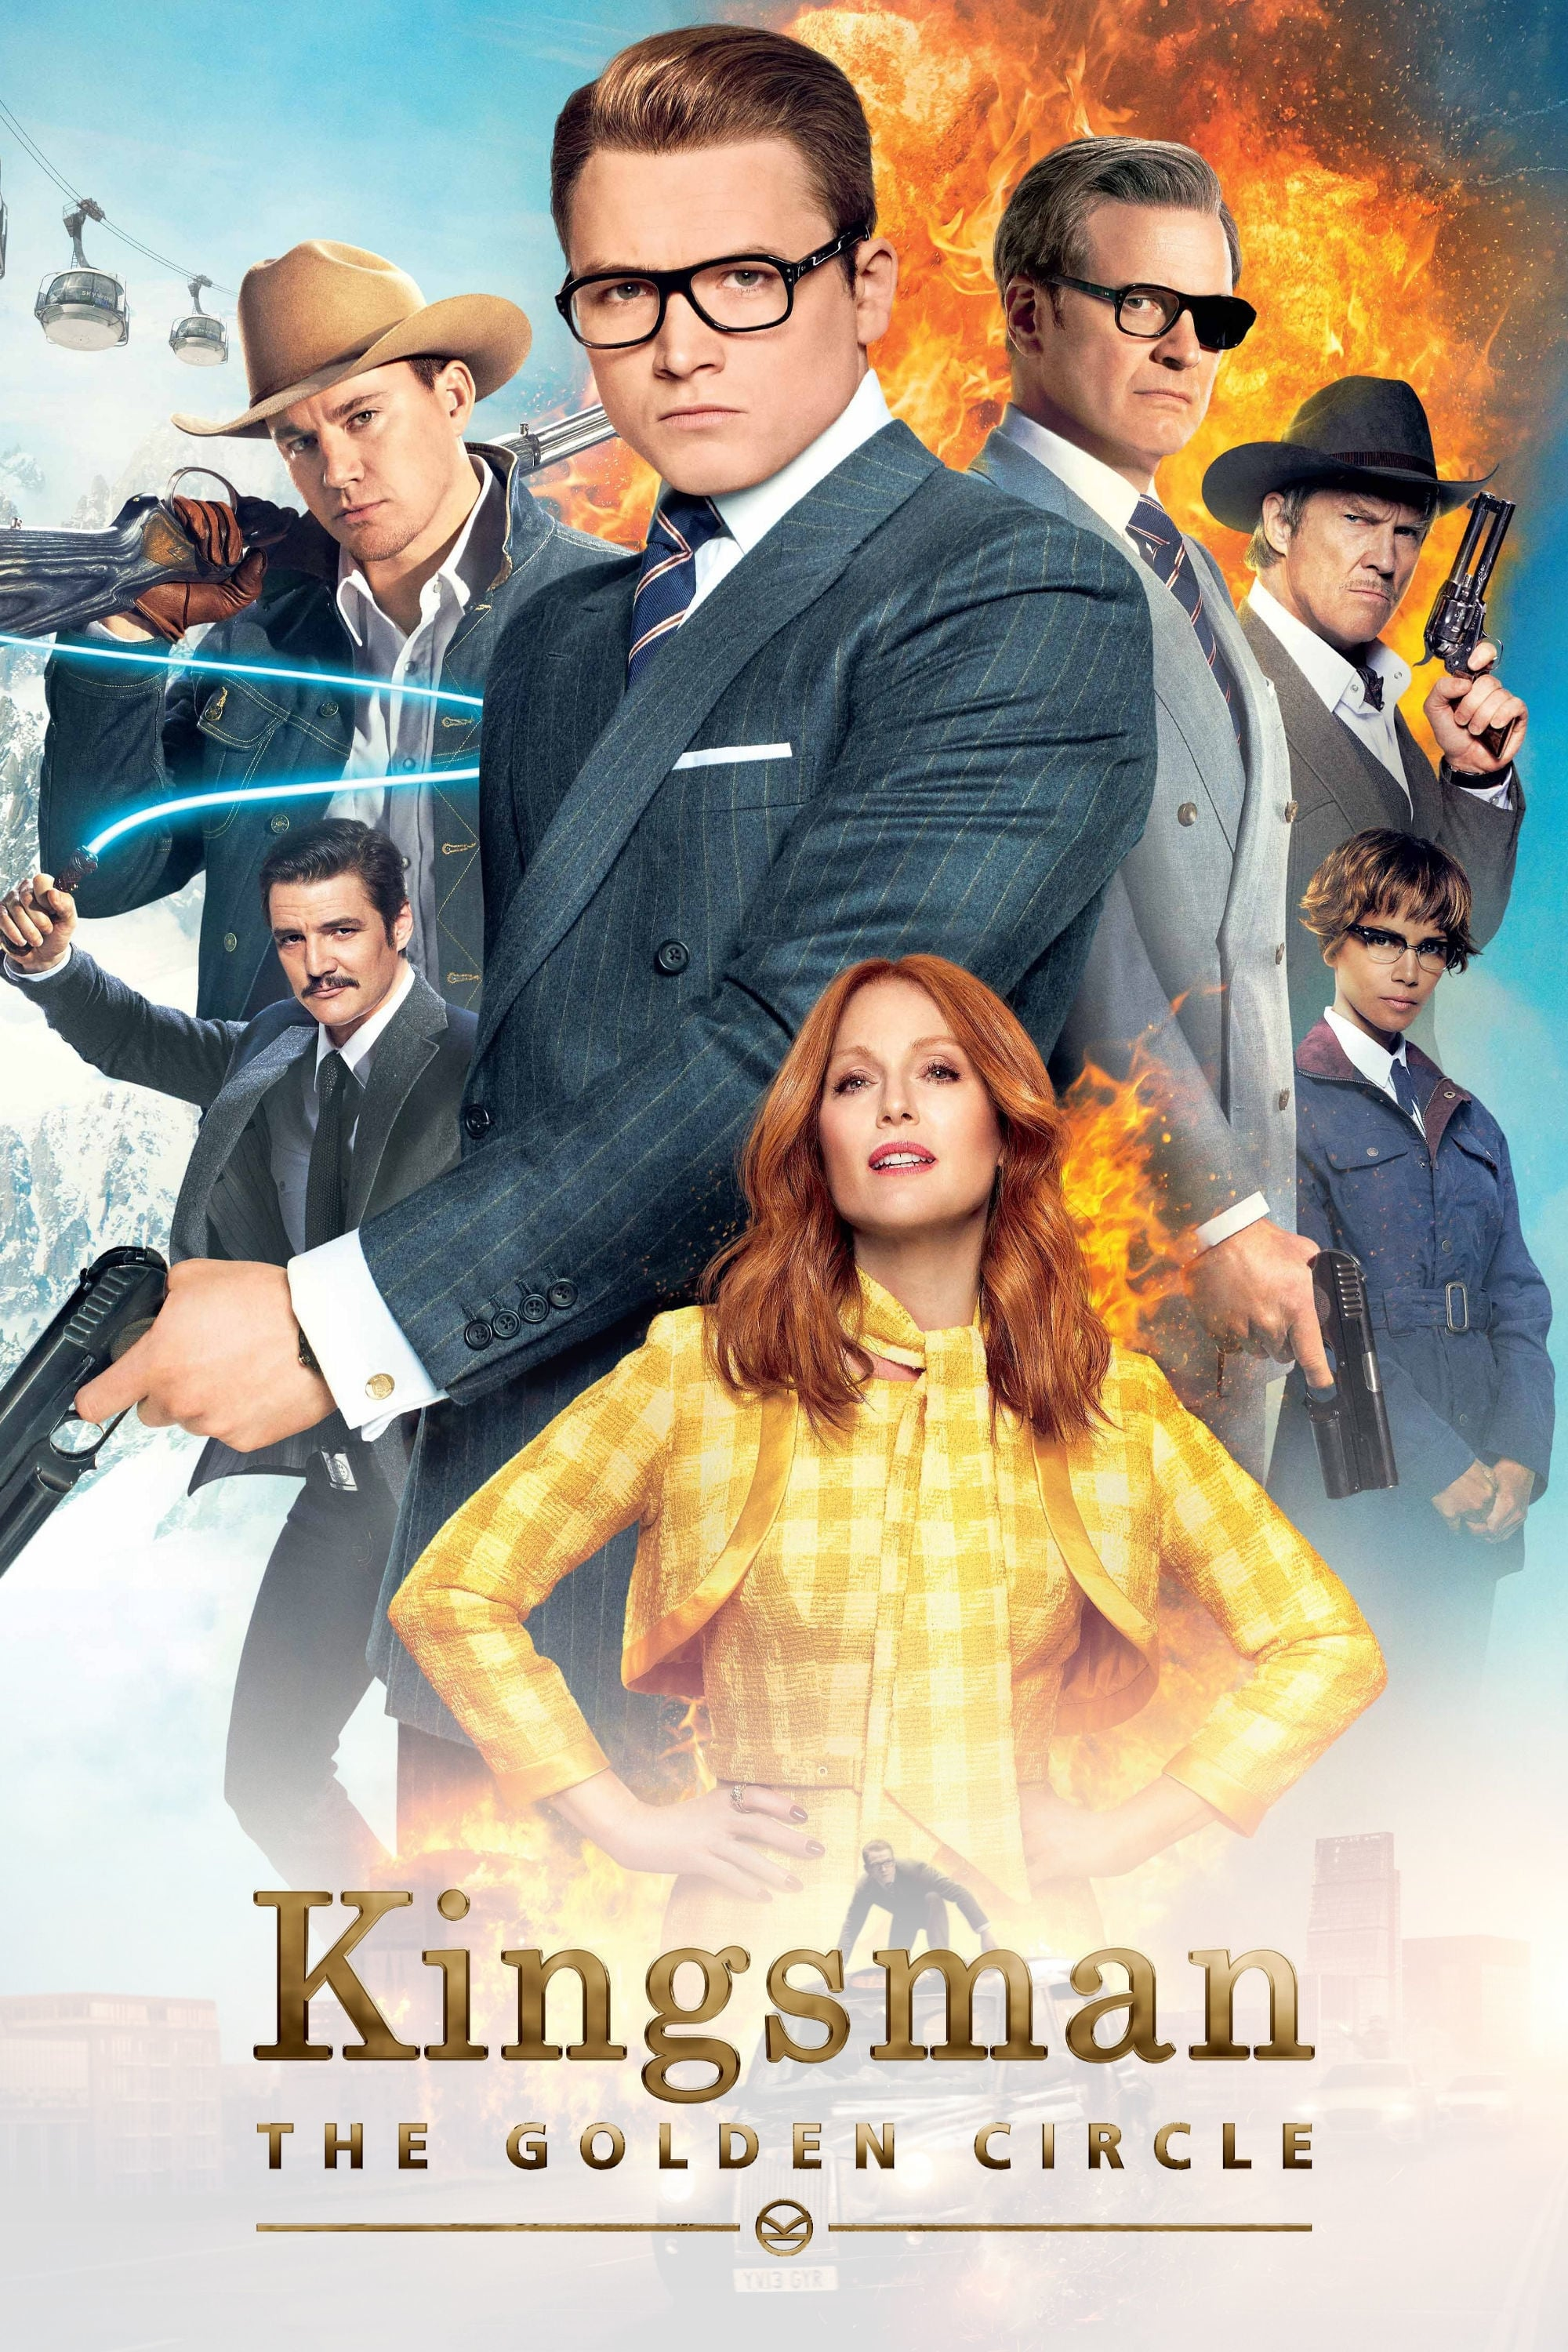 Kingsman: The Golden Circle / Kingsman: Ο Χρυσός Κύκλος